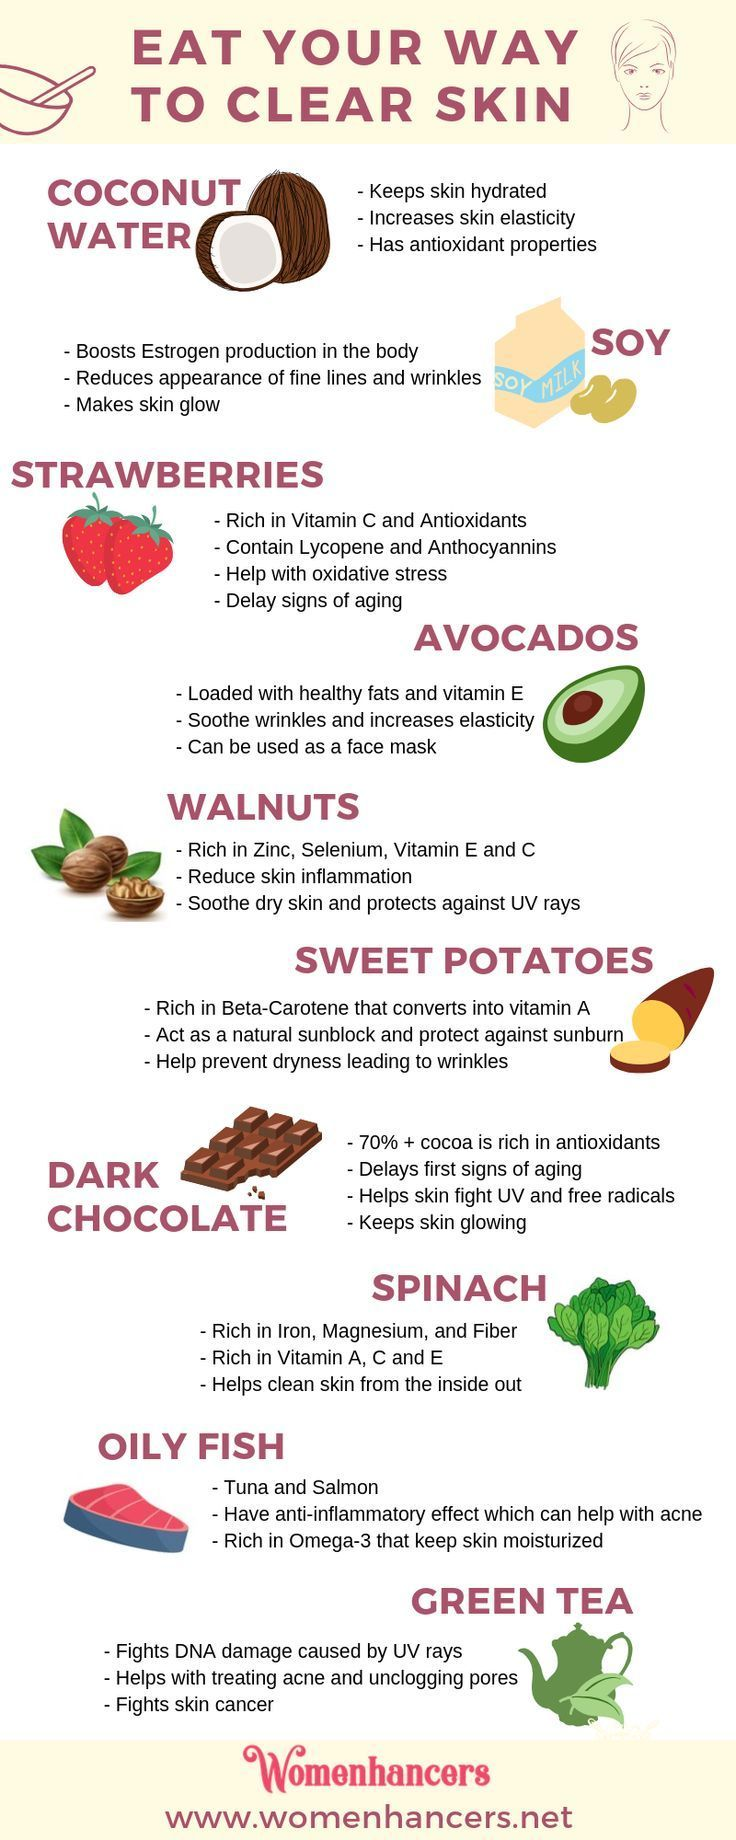 7 Foods To Absolutely Avoid If You Want Clear Glowing Skin In 2020 Foods For Clear Skin Clear Skin Diet Dry Skin Care